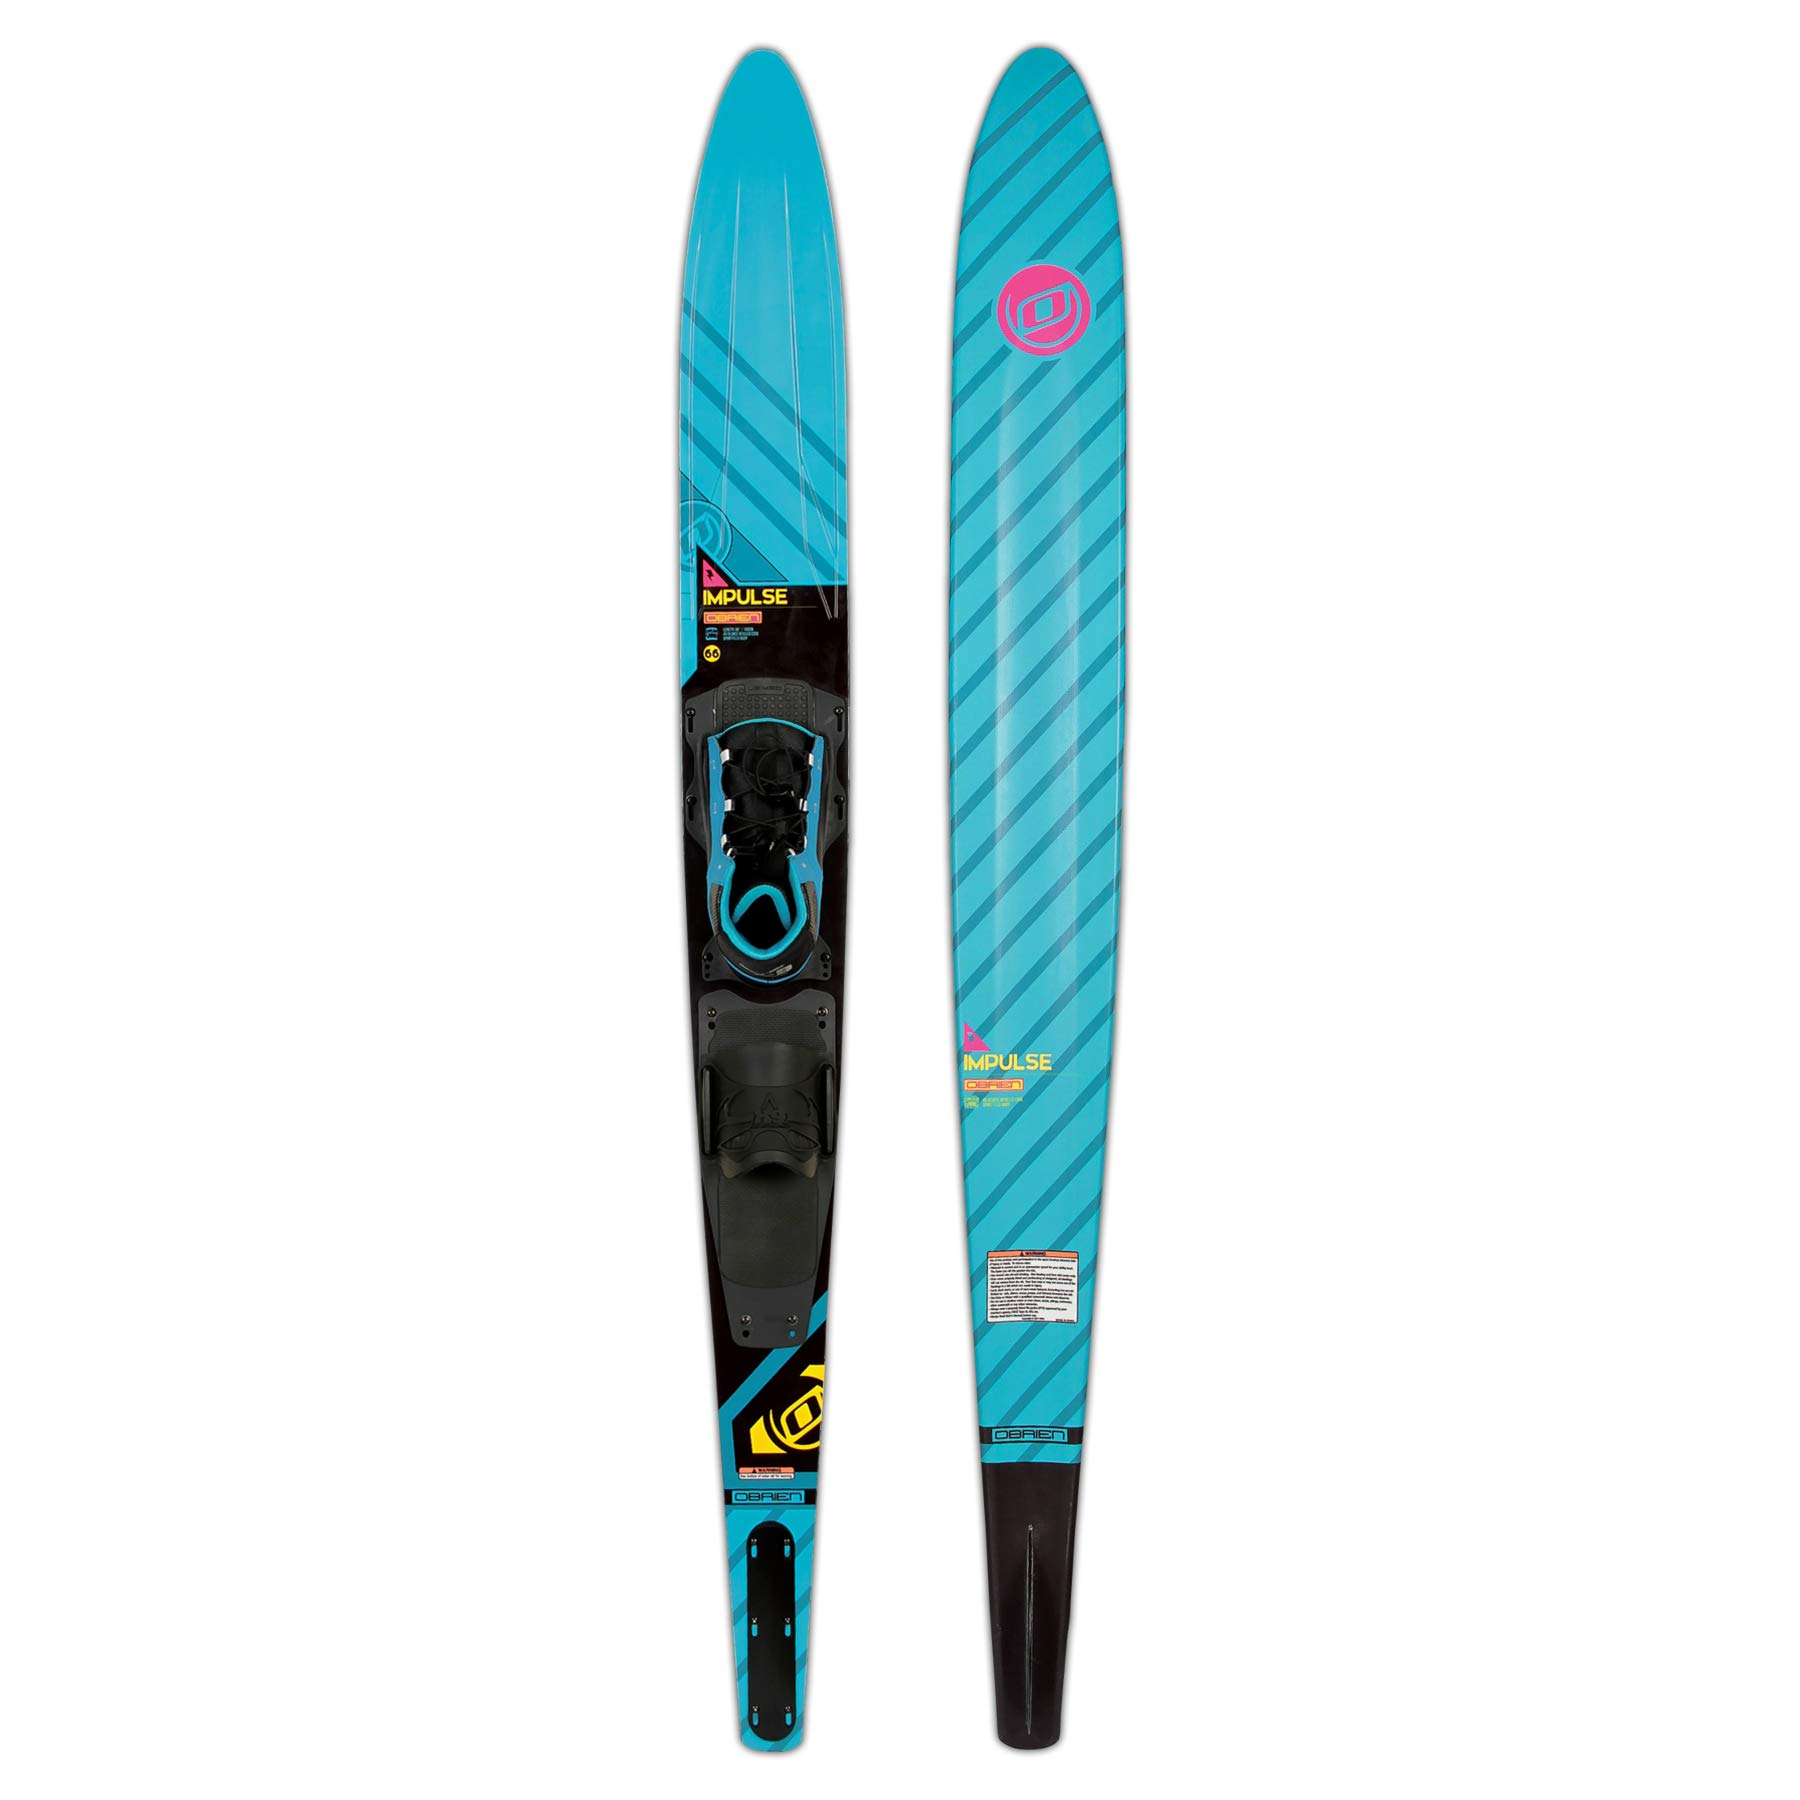 O'Brien Impulse 66'' w/X-9 XS-S Waterskis by O'Brien